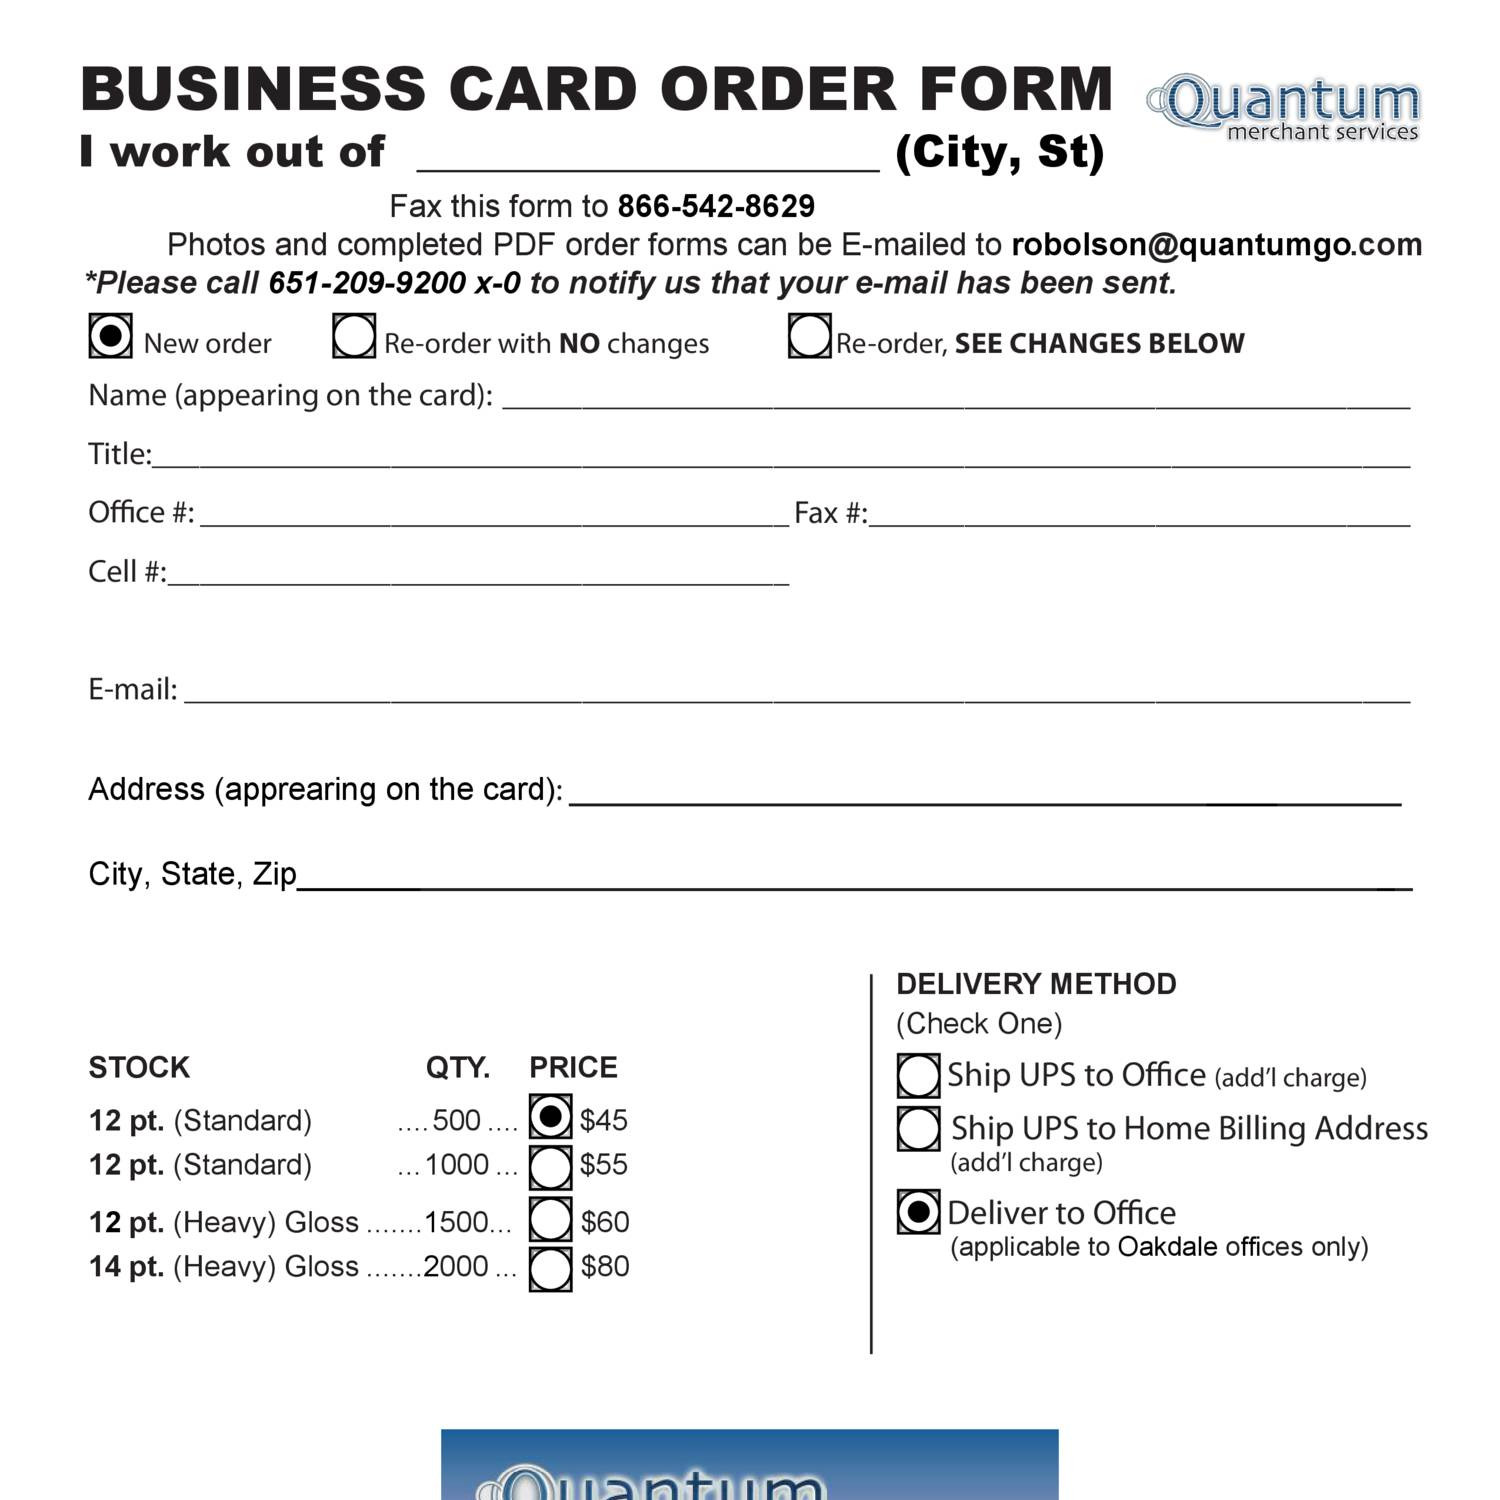 Qms business cards order formpdf docdroid colourmoves